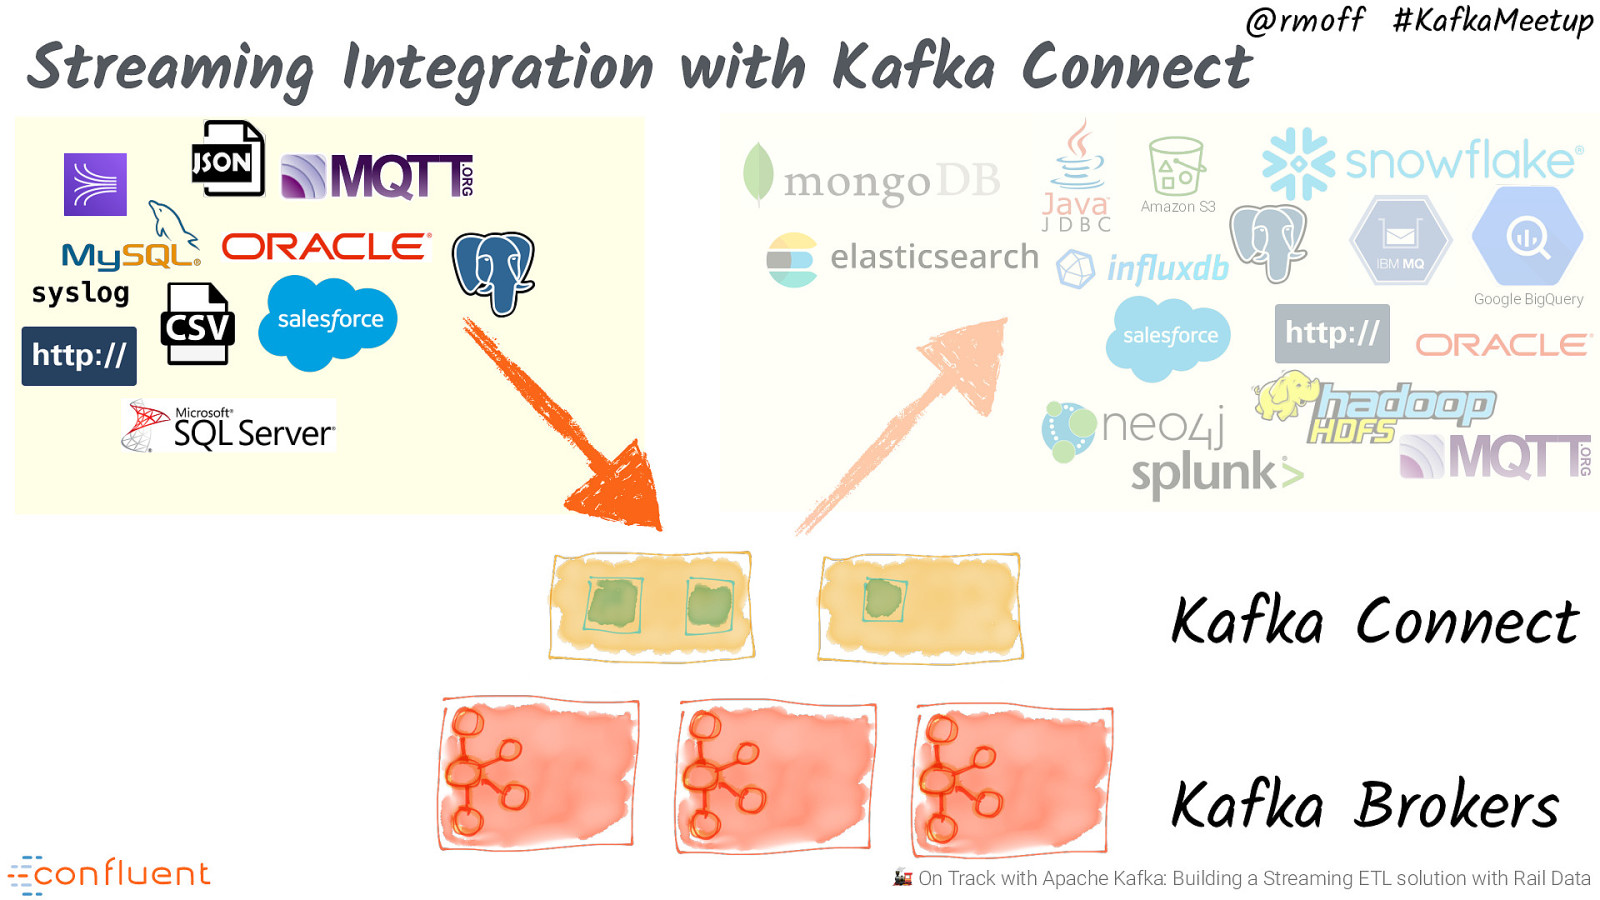 🚂 On Track with Apache Kafka: Building a Streaming ETL solution